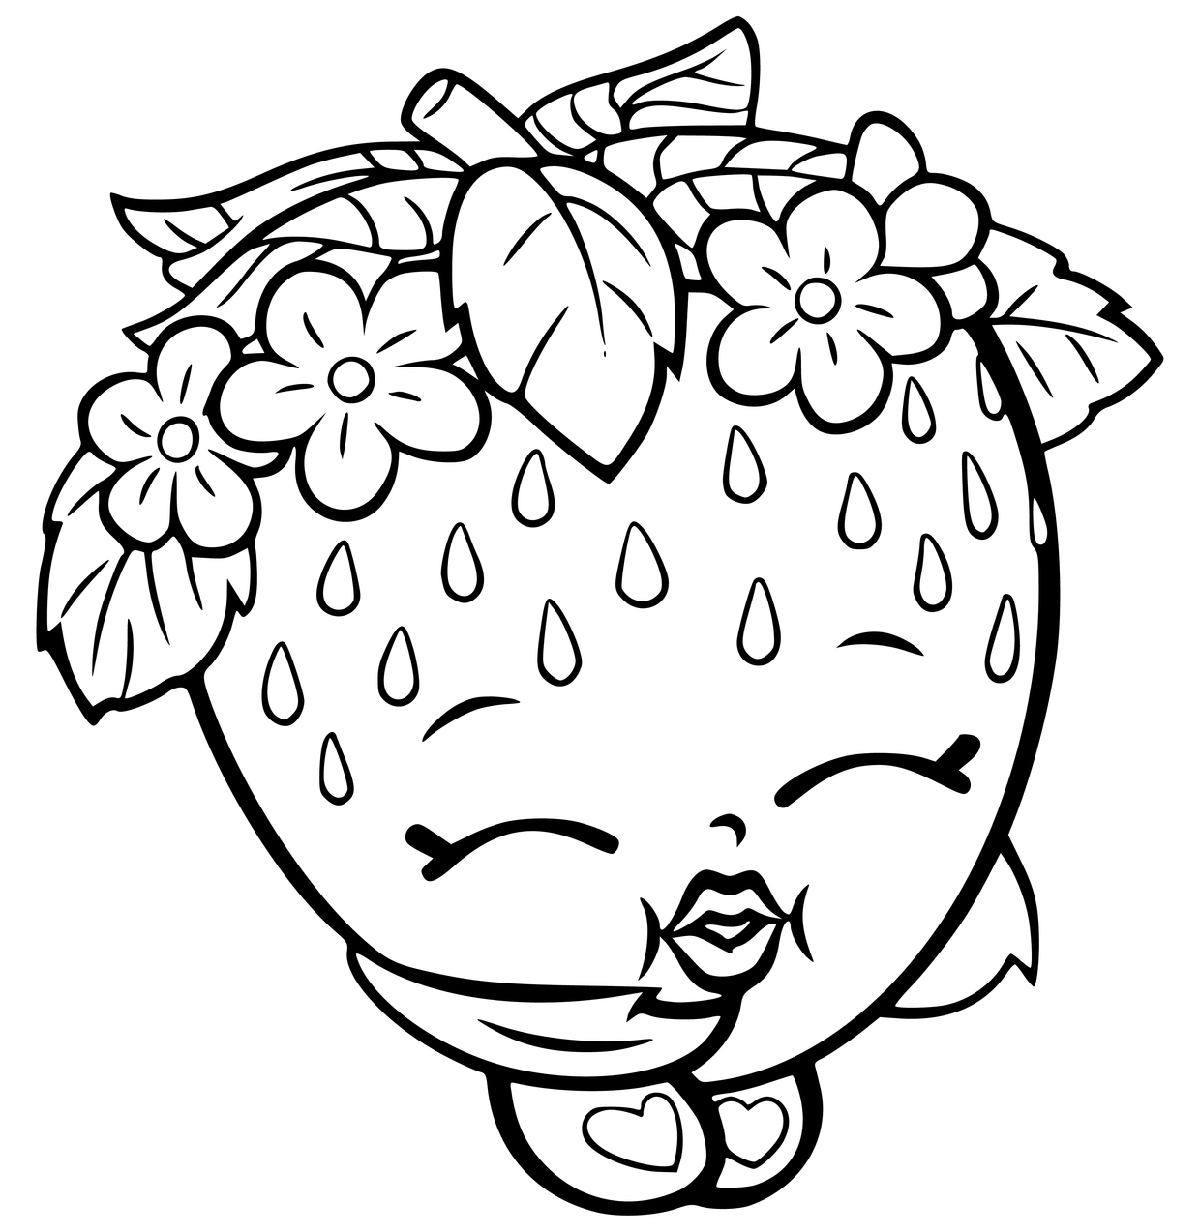 graphic about Shopkins Coloring Pages Printable titled Shopkins Coloring Images for Innovative and More youthful